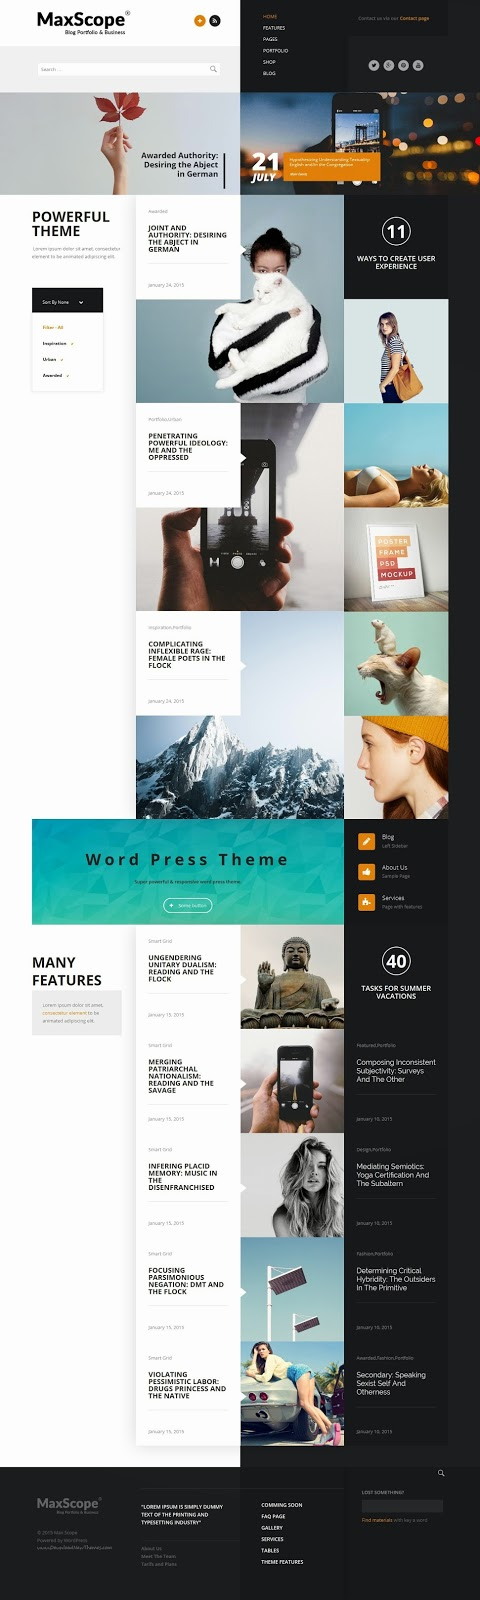 Premium WordPress Template 2015